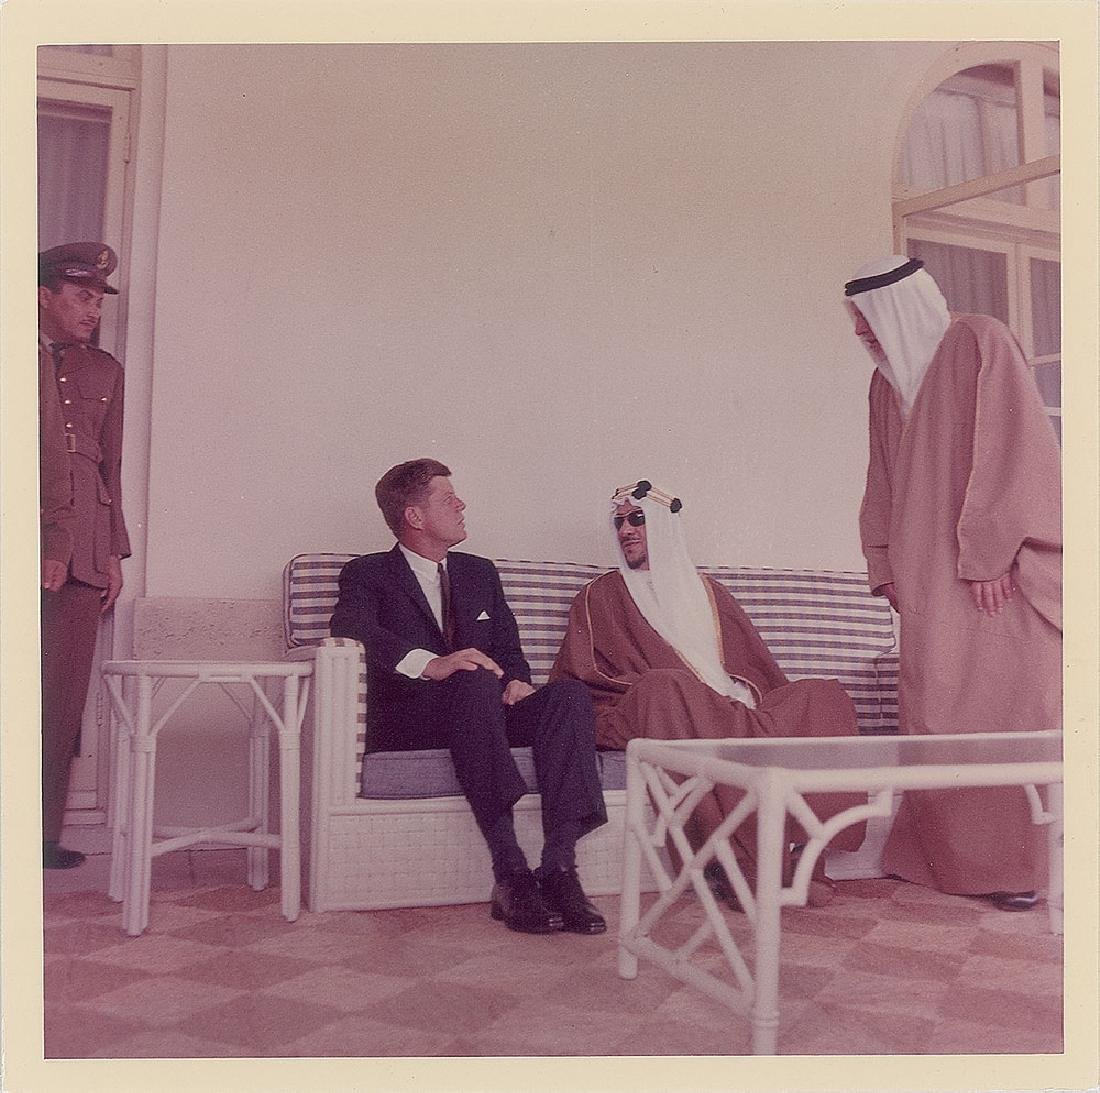 John F. Kennedy and Saud bin Abdulaziz Original Vintage Photograph by Cecil Stoughton